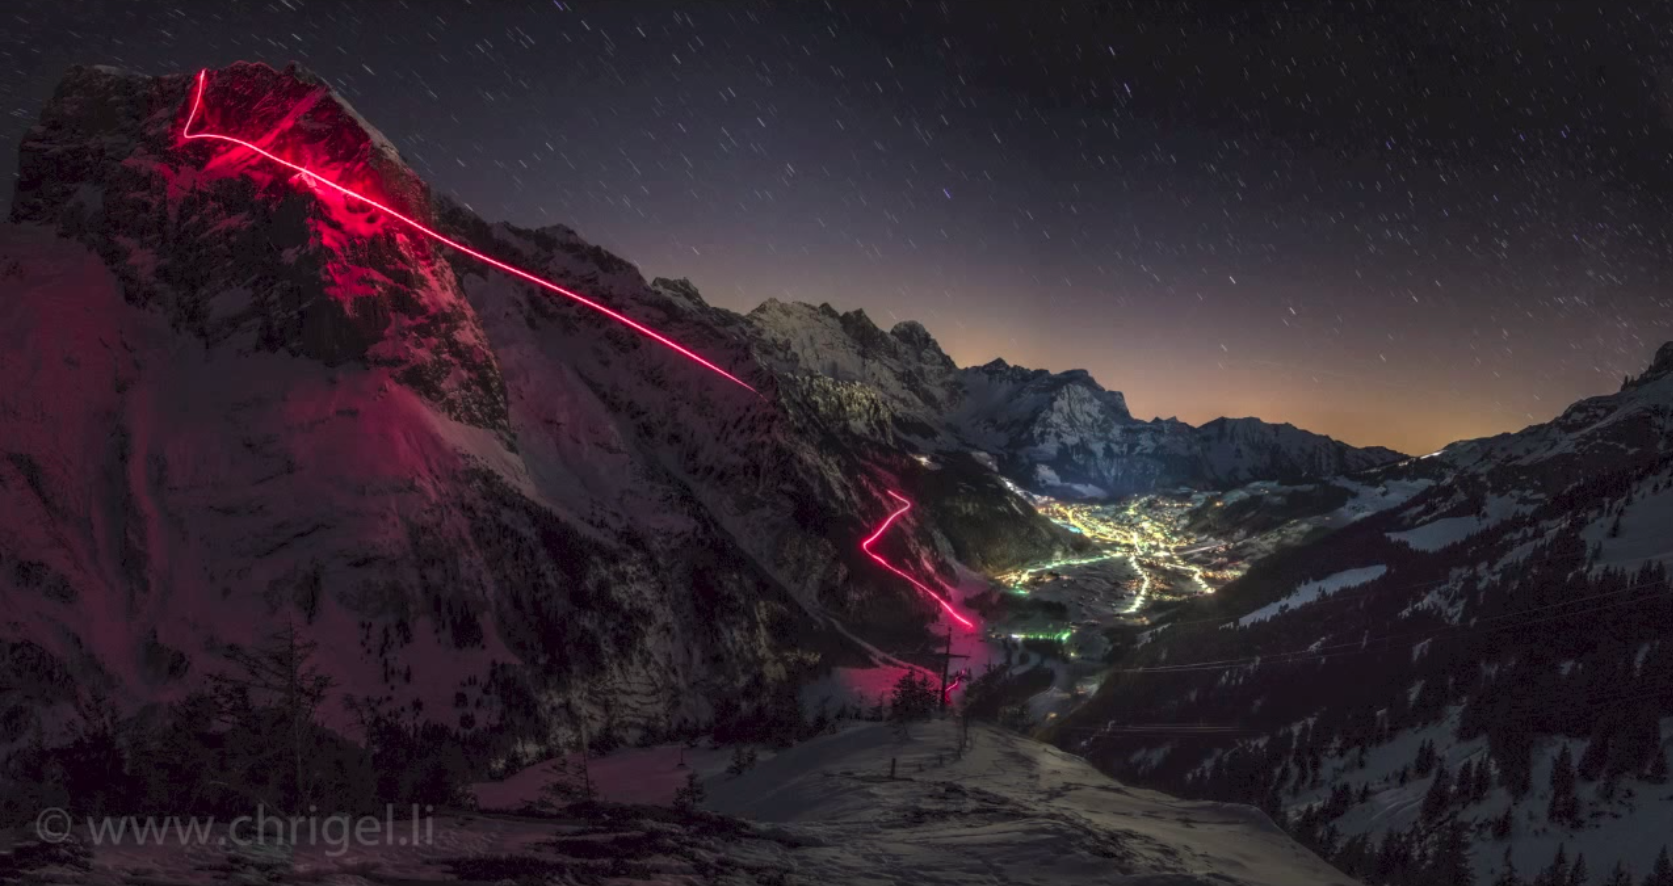 Insane night wingsuit flight results in this spectacular picture